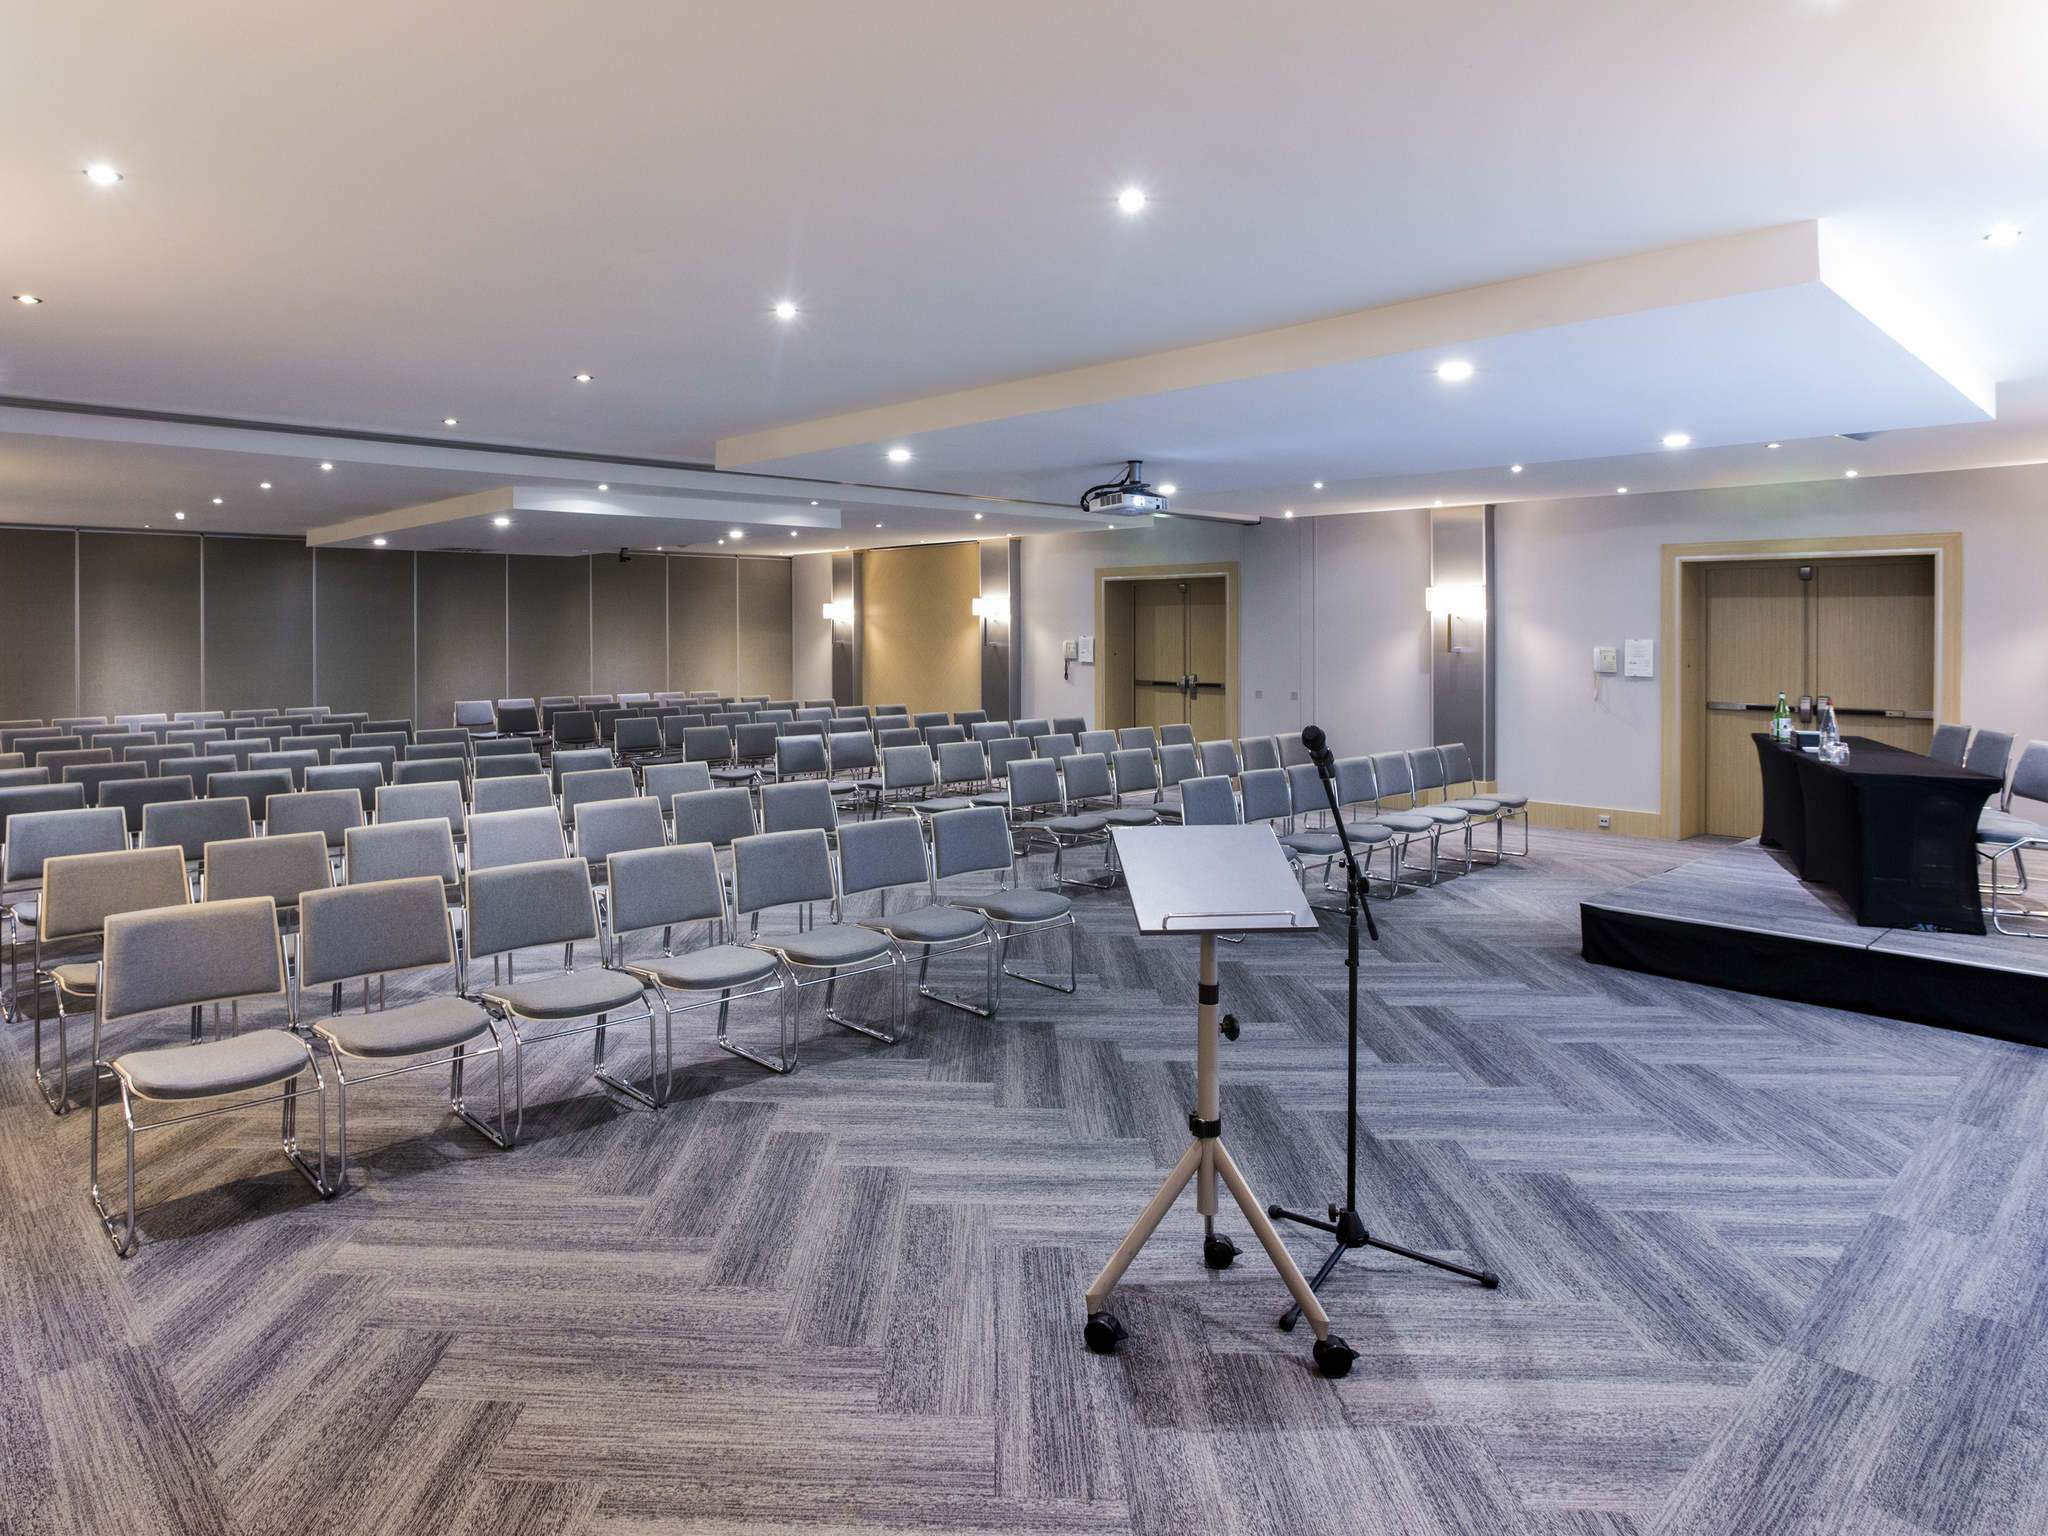 ... Meetings and events - Novotel Luxembourg Kirchberg ... 9247c047a8e2